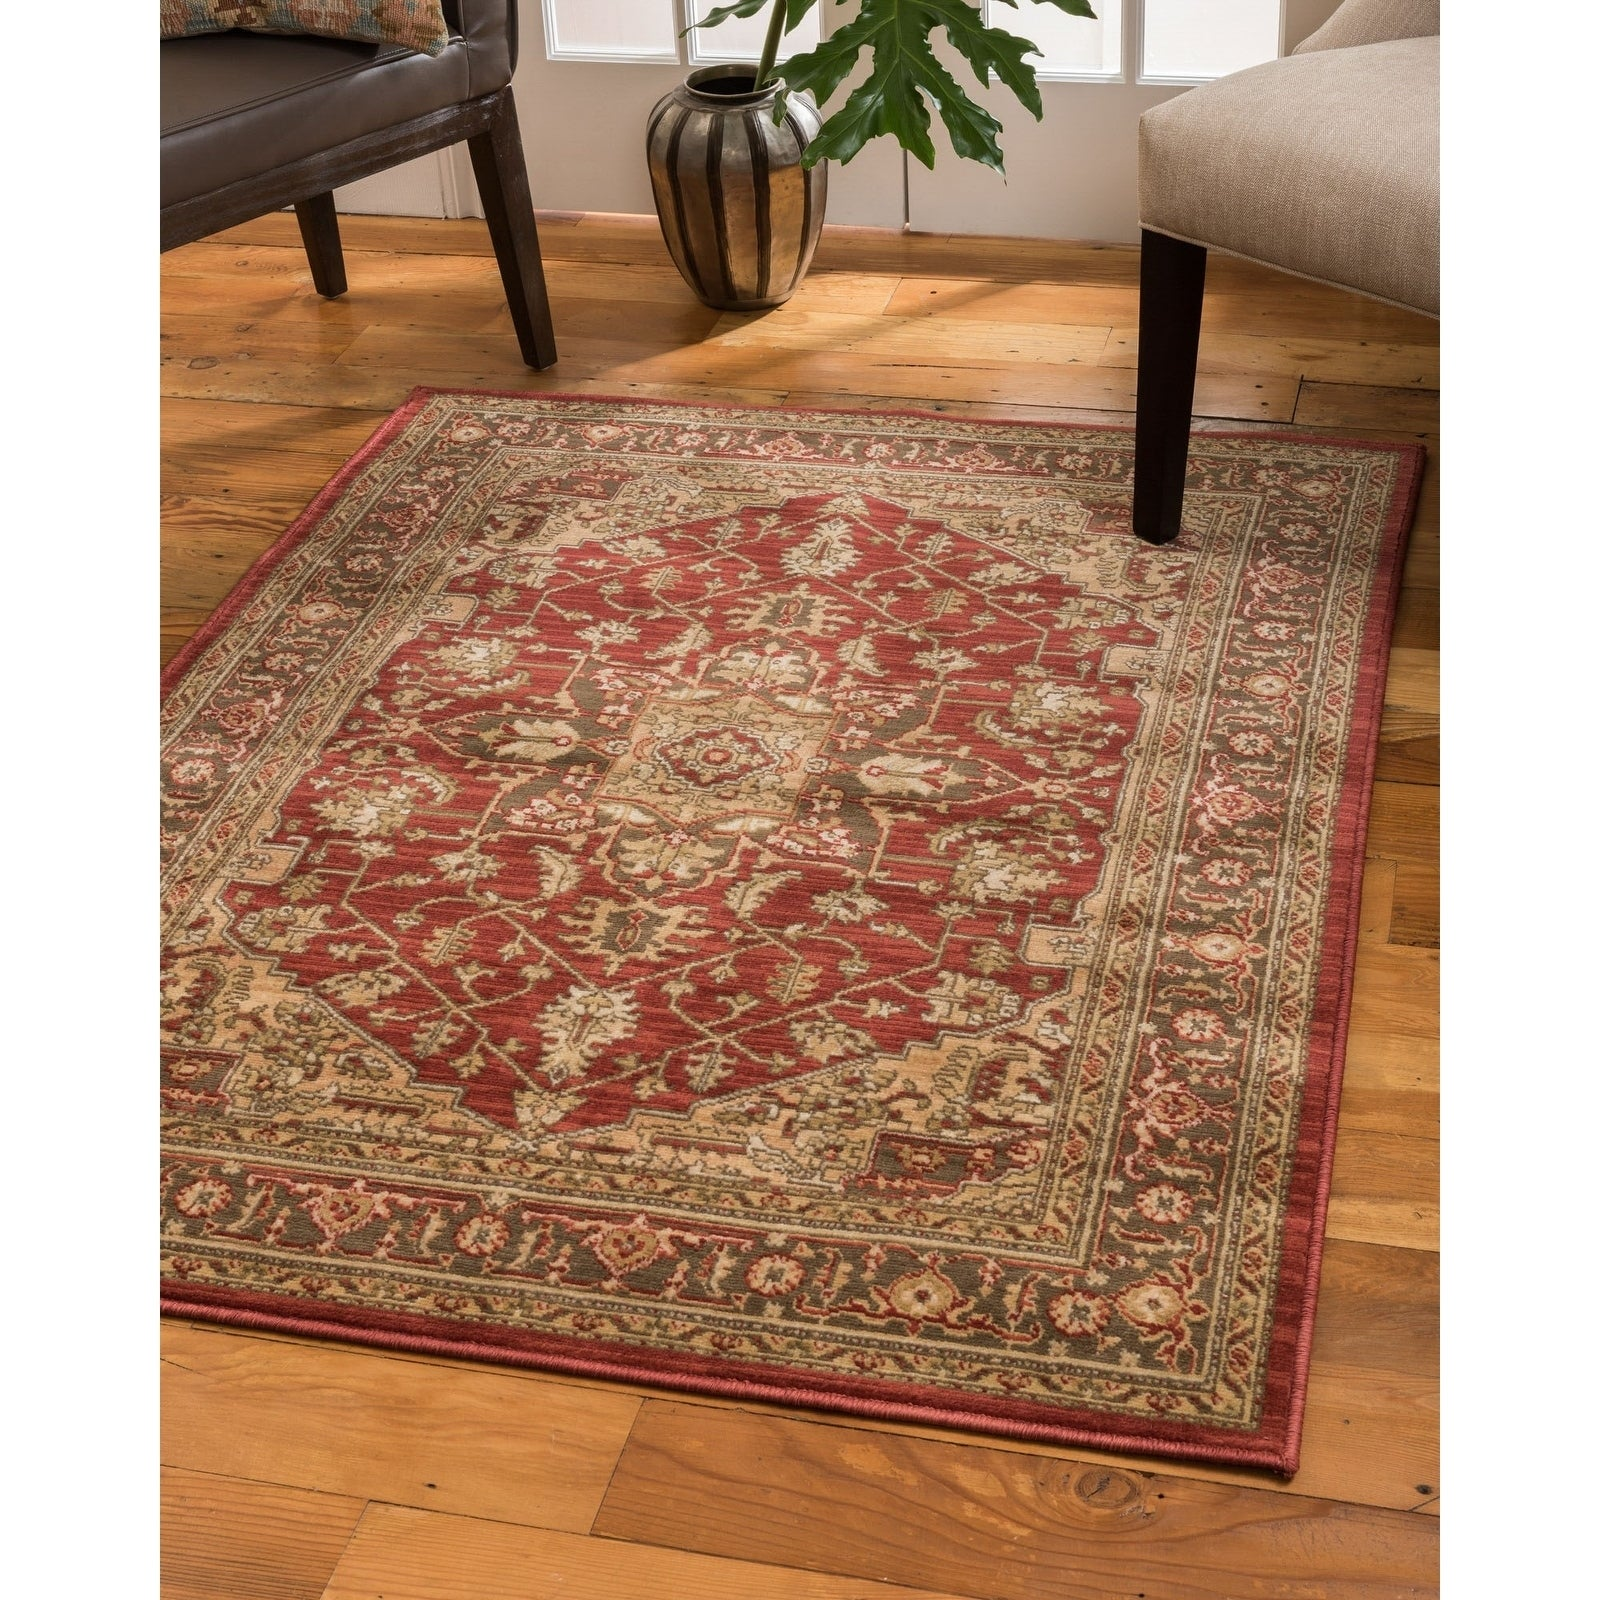 Shop natural area rugs vintage oriental chiara polypropylene rectangle rug 6x9 multi 6 x 9 free shipping today overstock com 22747861